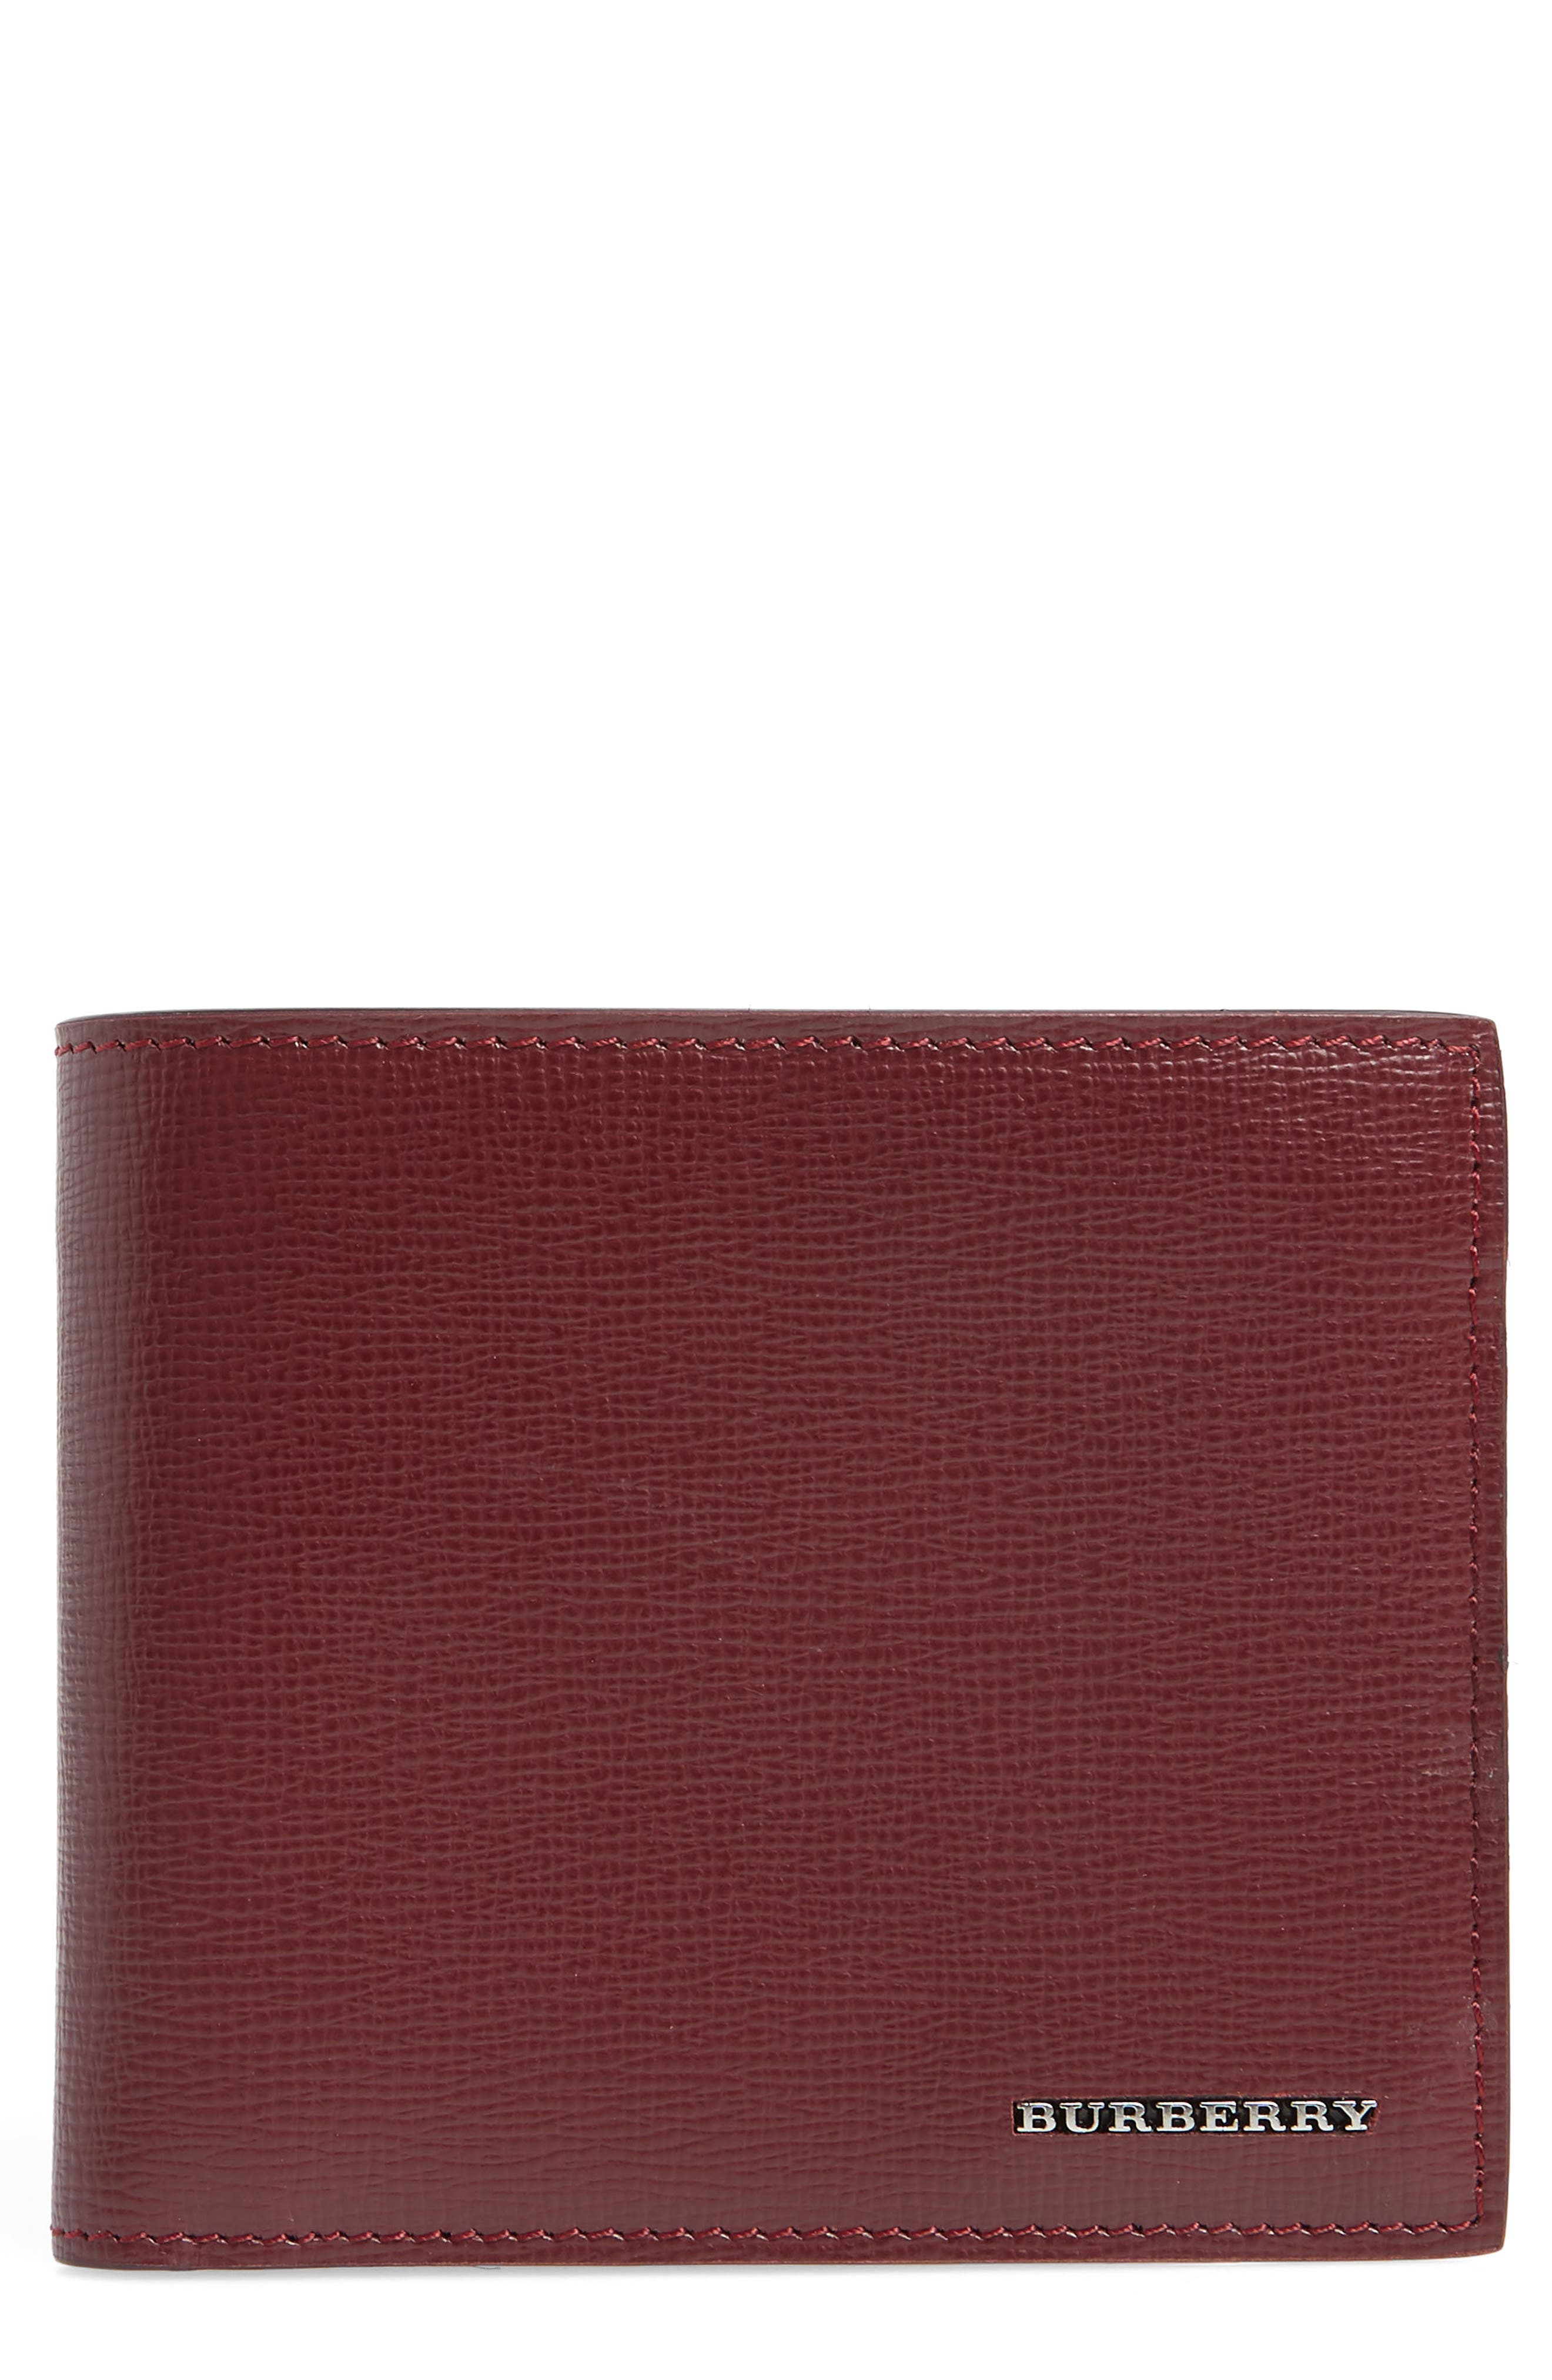 Leather Bifold Wallet,                             Main thumbnail 1, color,                             Burgundy Red